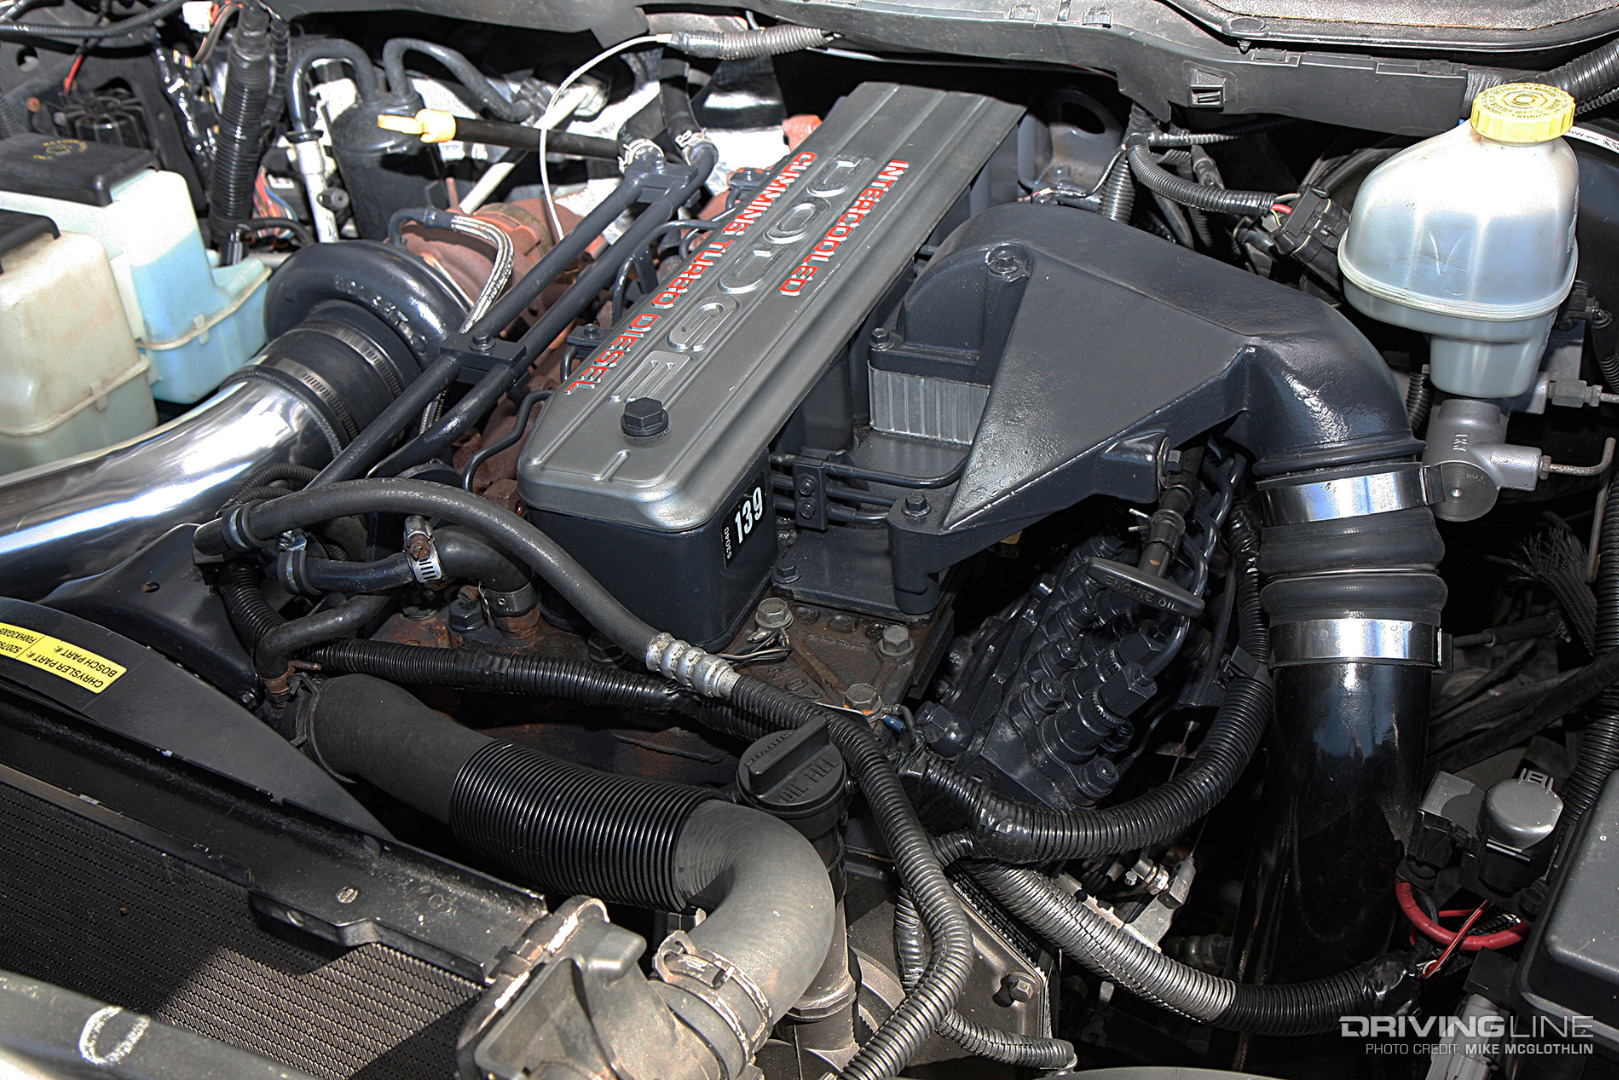 11 Reasons Why the 12-Valve Cummins Is the Ultimate Diesel Engine |  DrivingLine